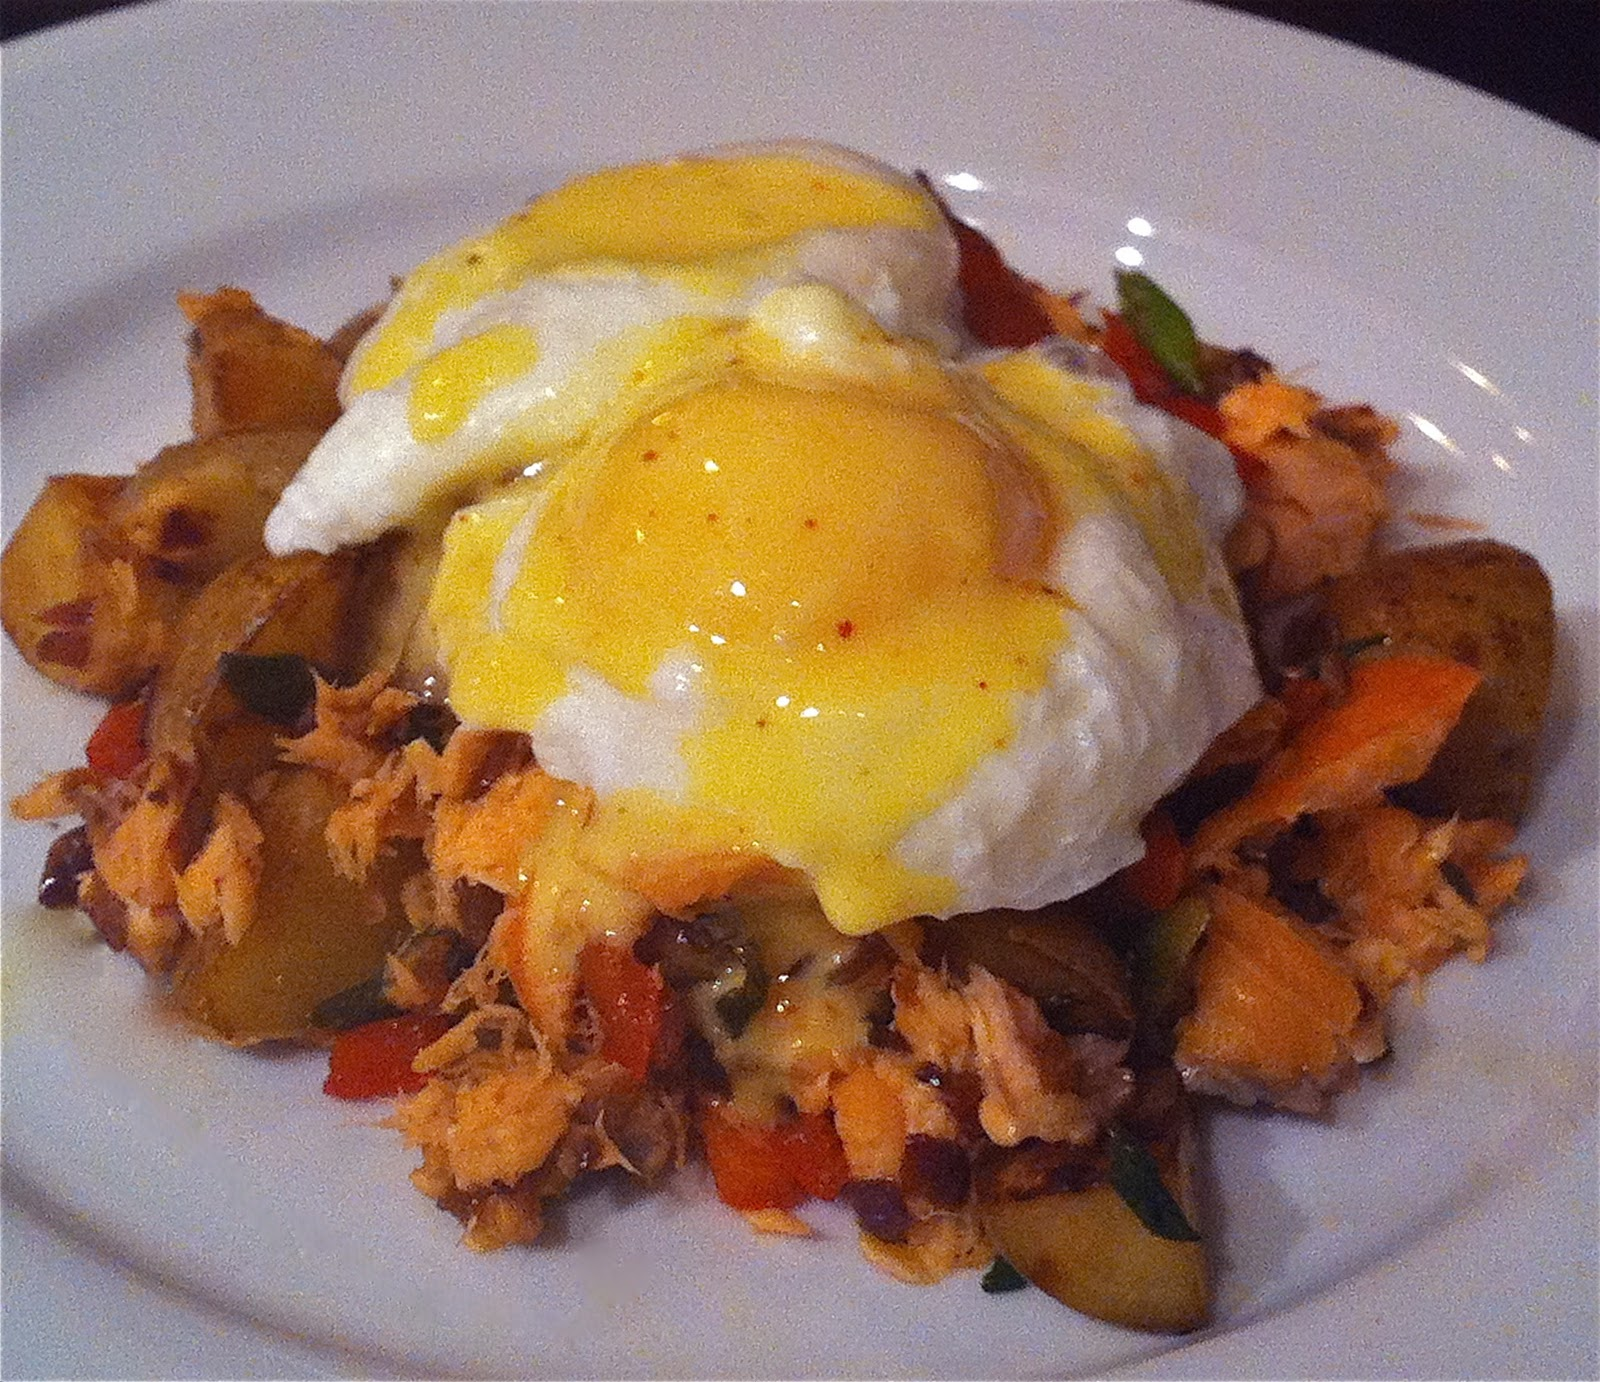 The Charitable Chef: Smoked Salmon Hash With Poached Eggs